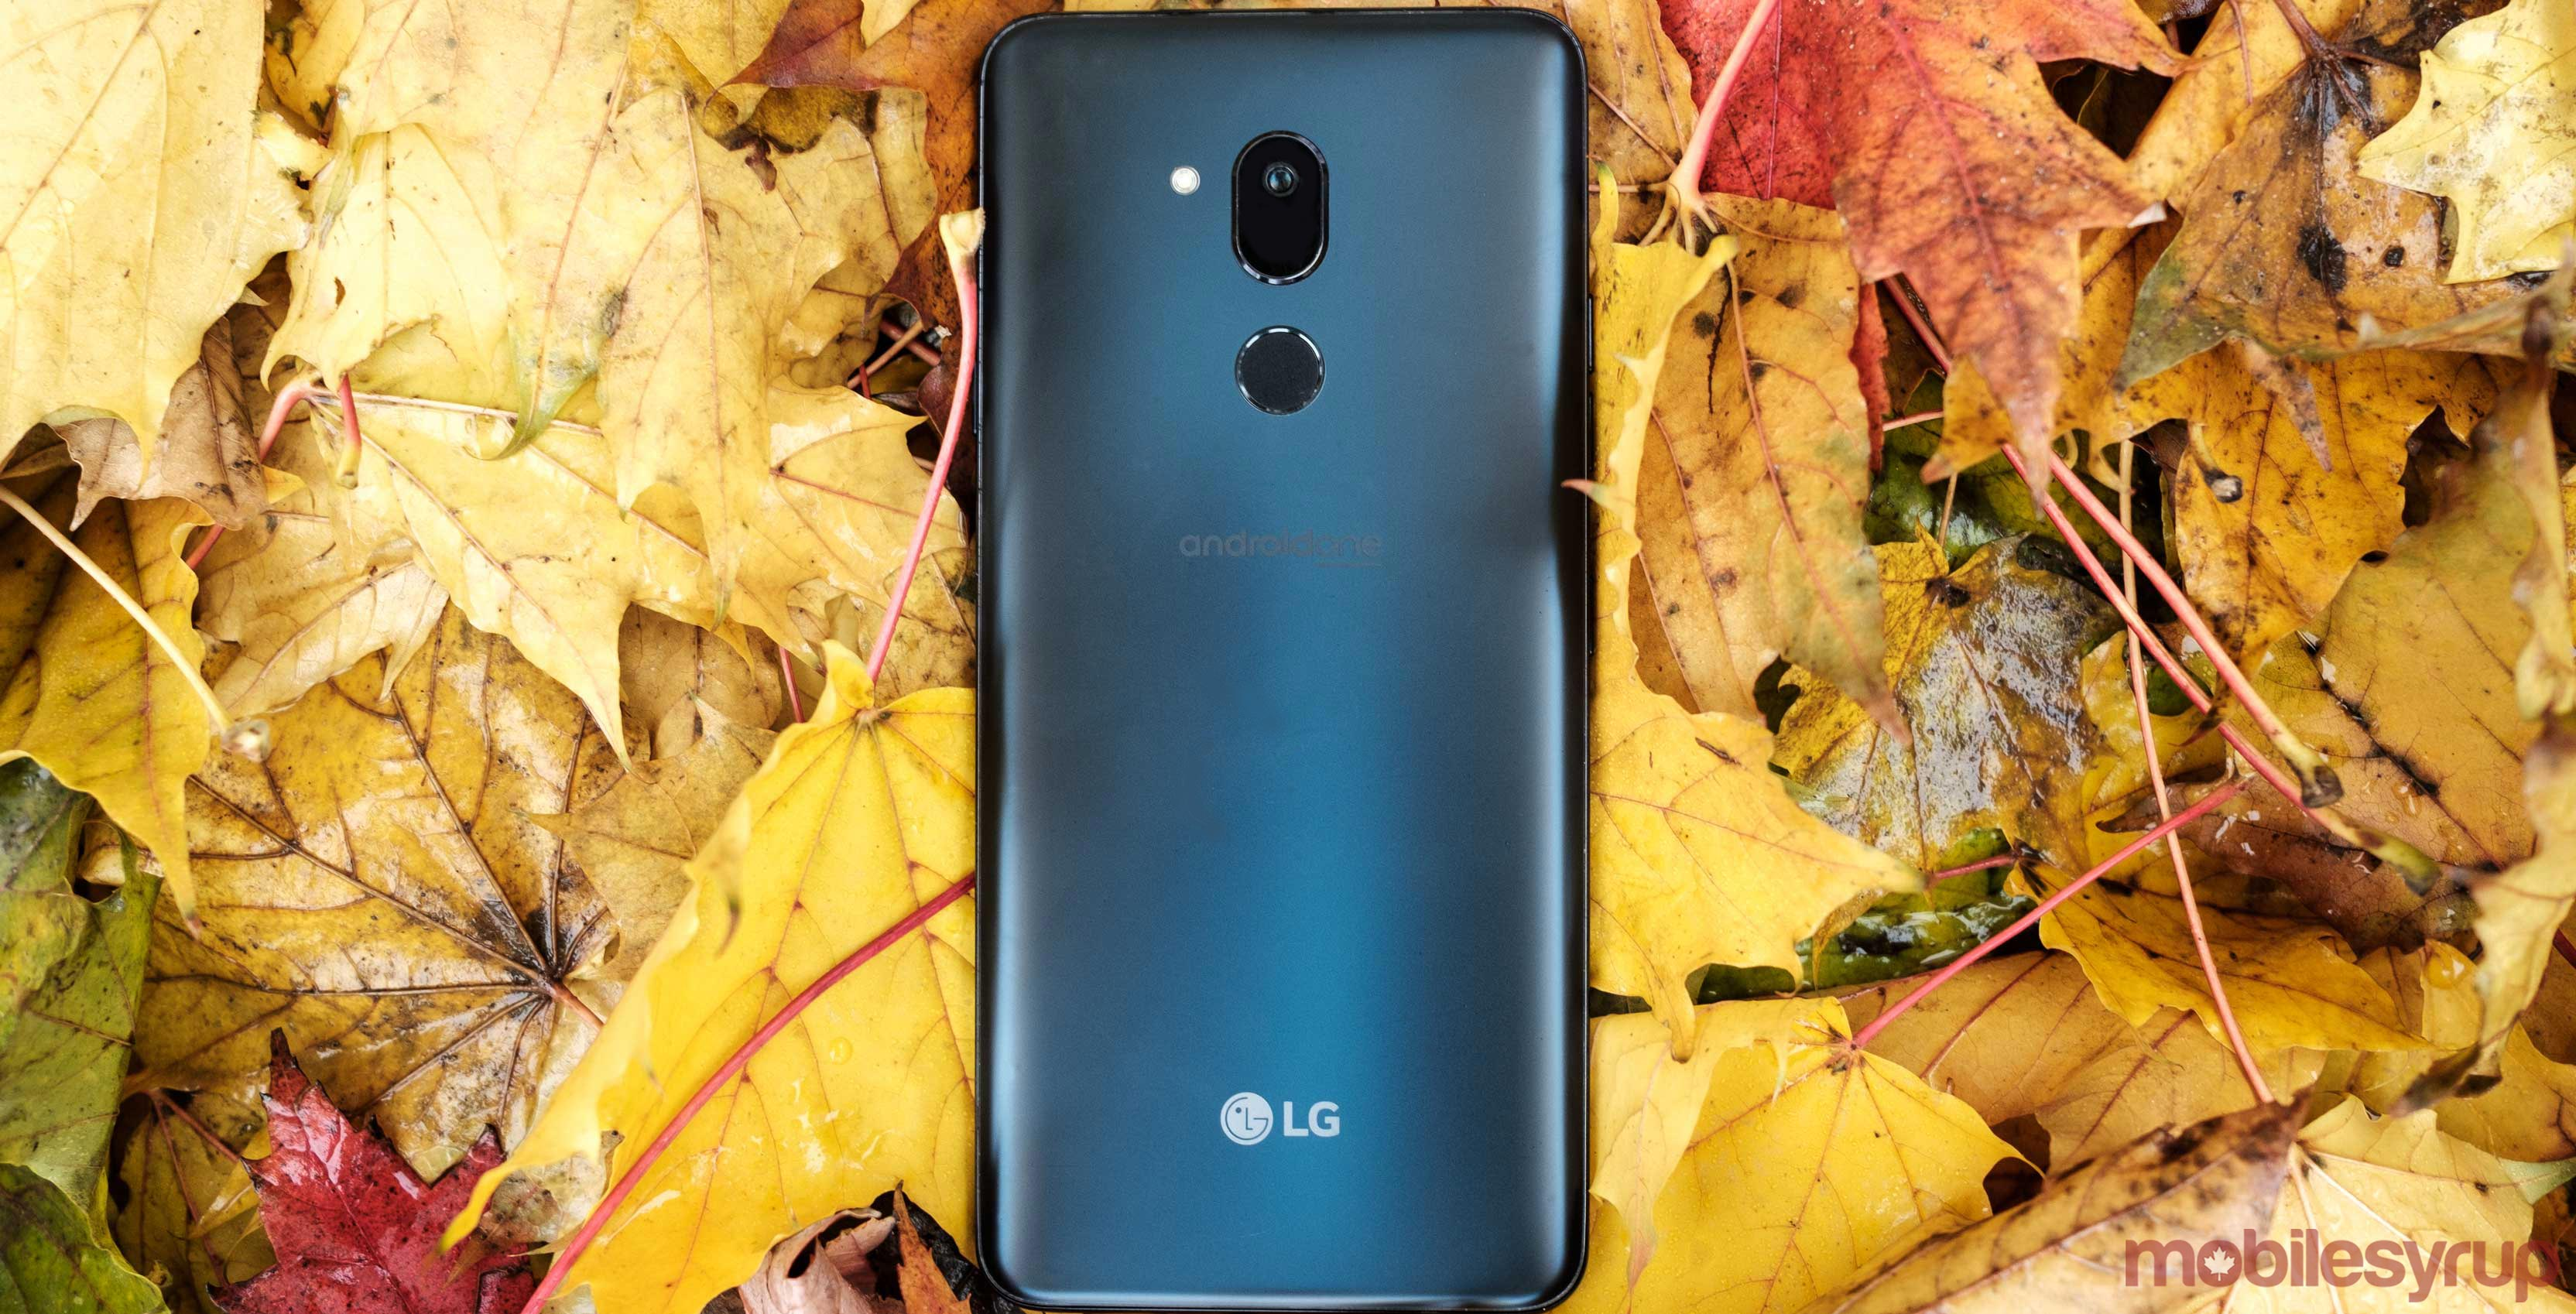 LG G7 One Review: All killer, no filler